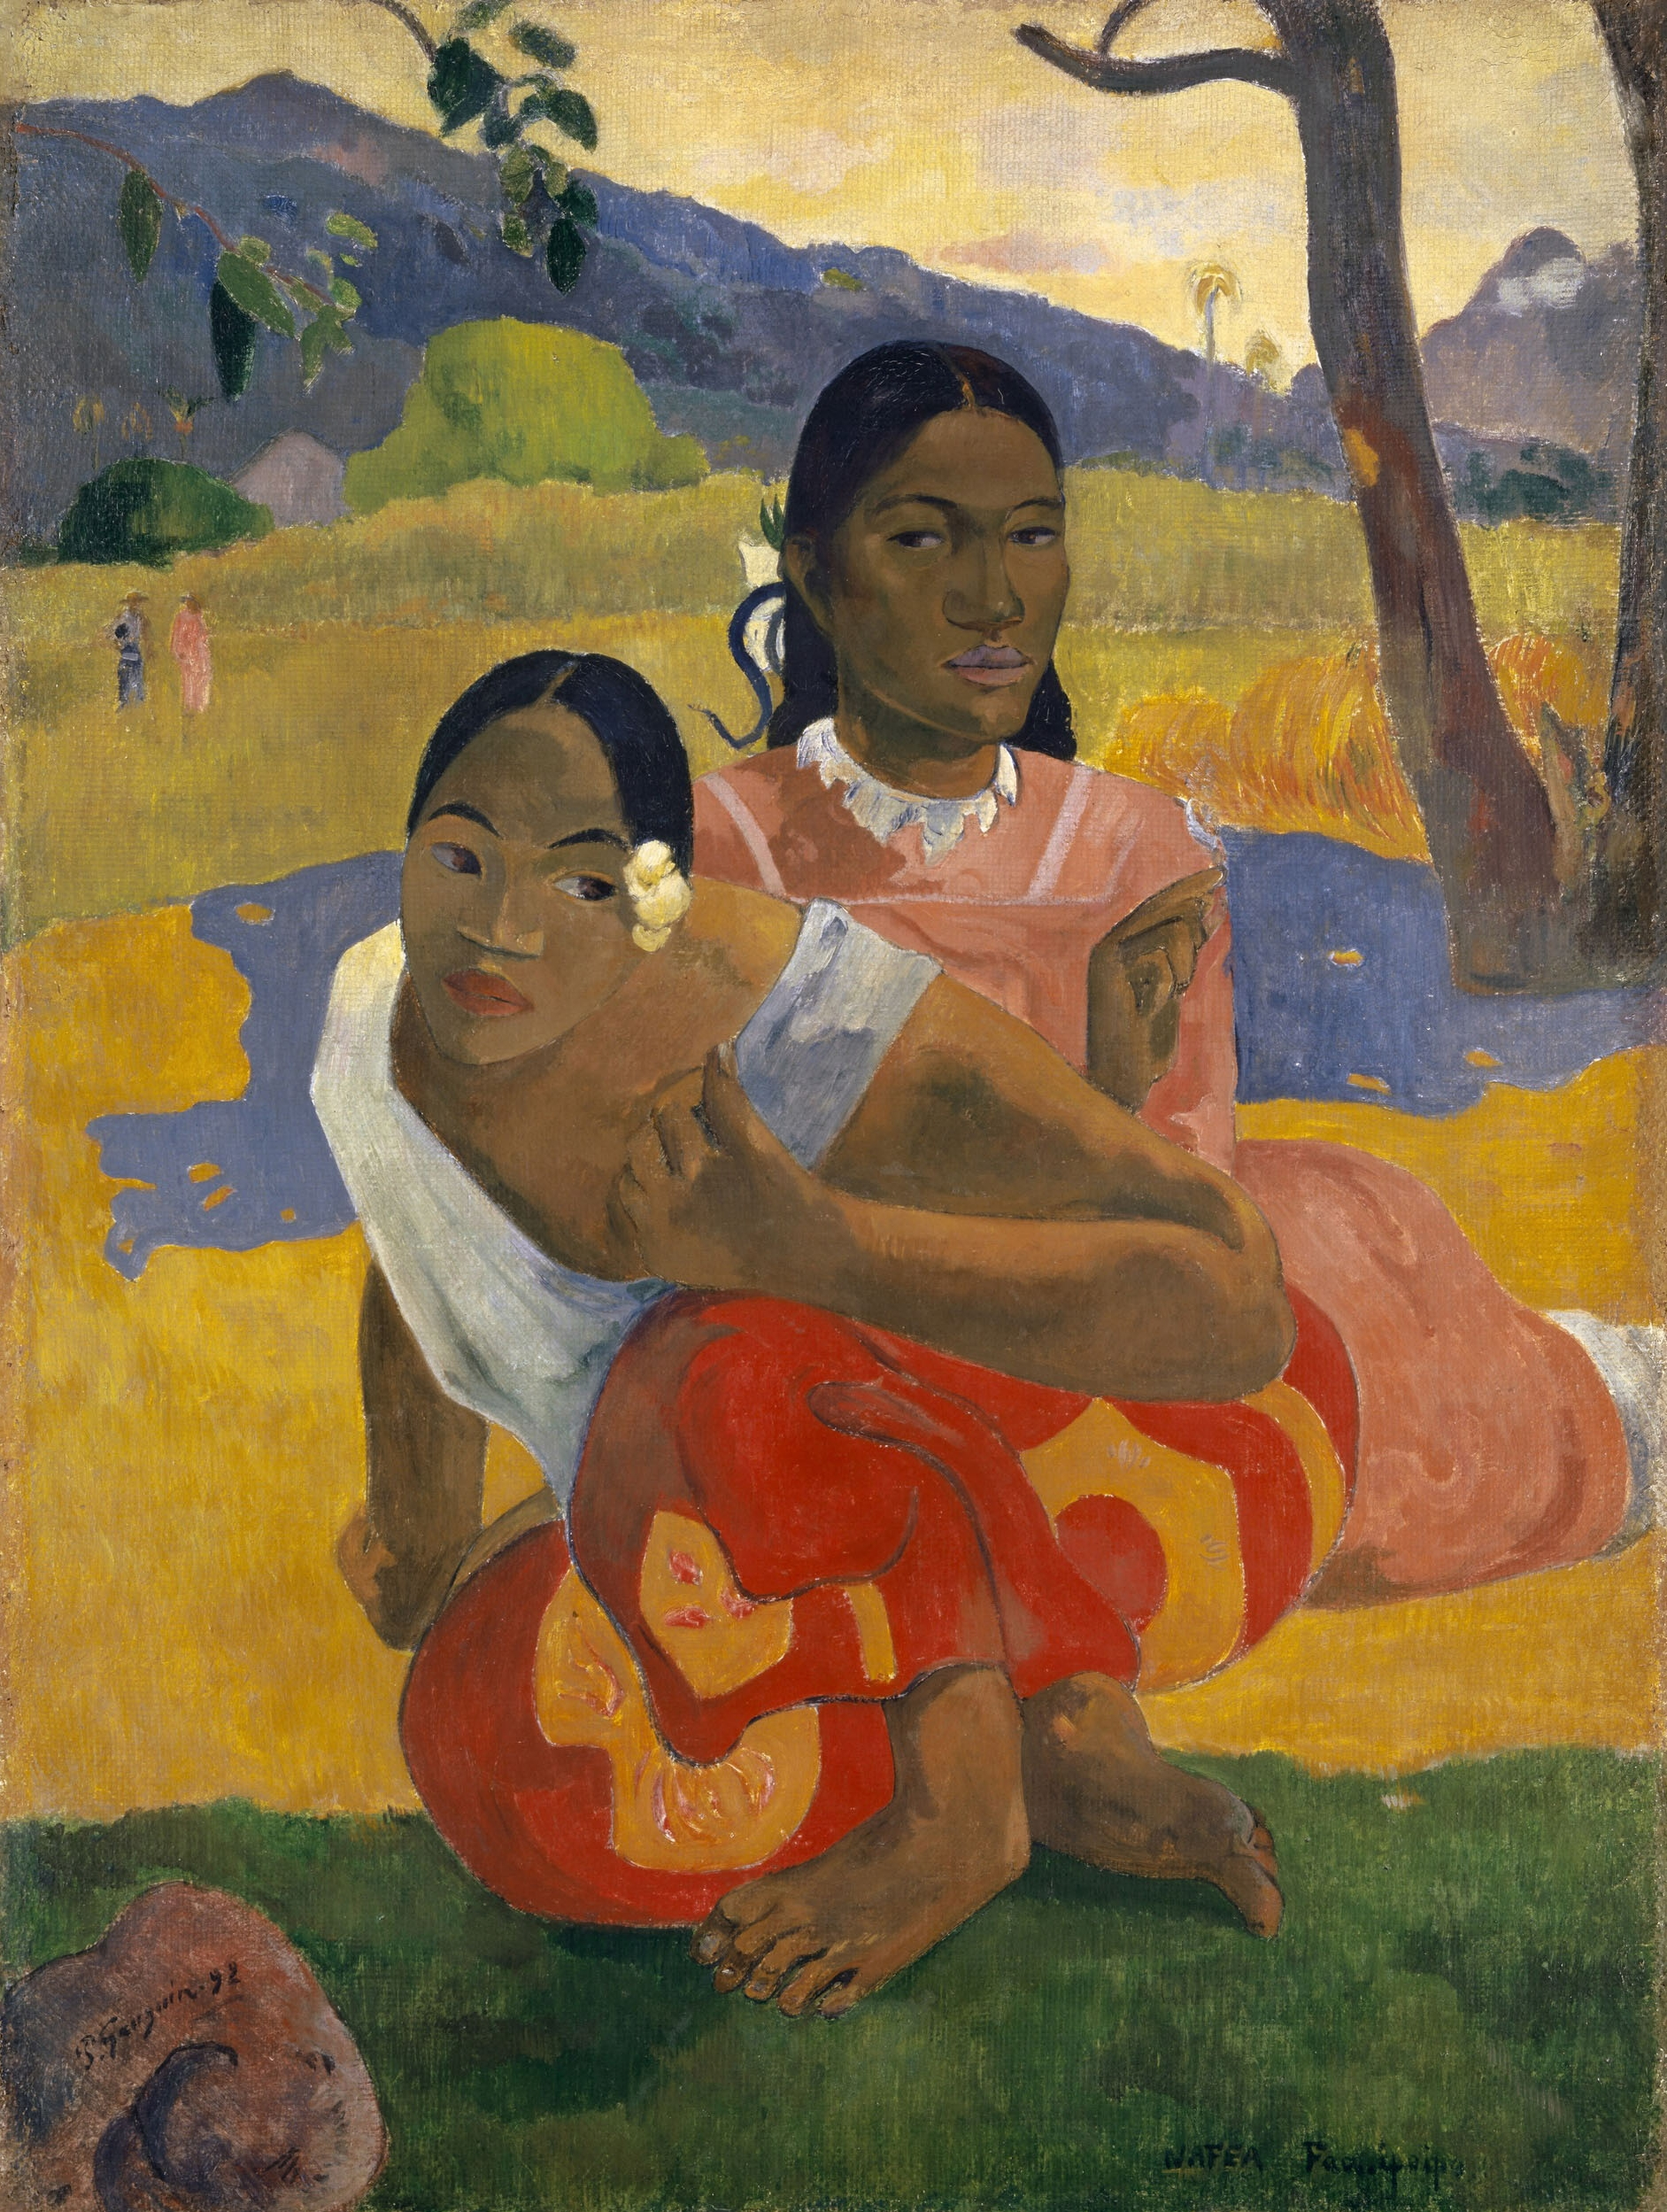 When Will You Marry?, Paul Gauguin. 1892, oil on canvas.